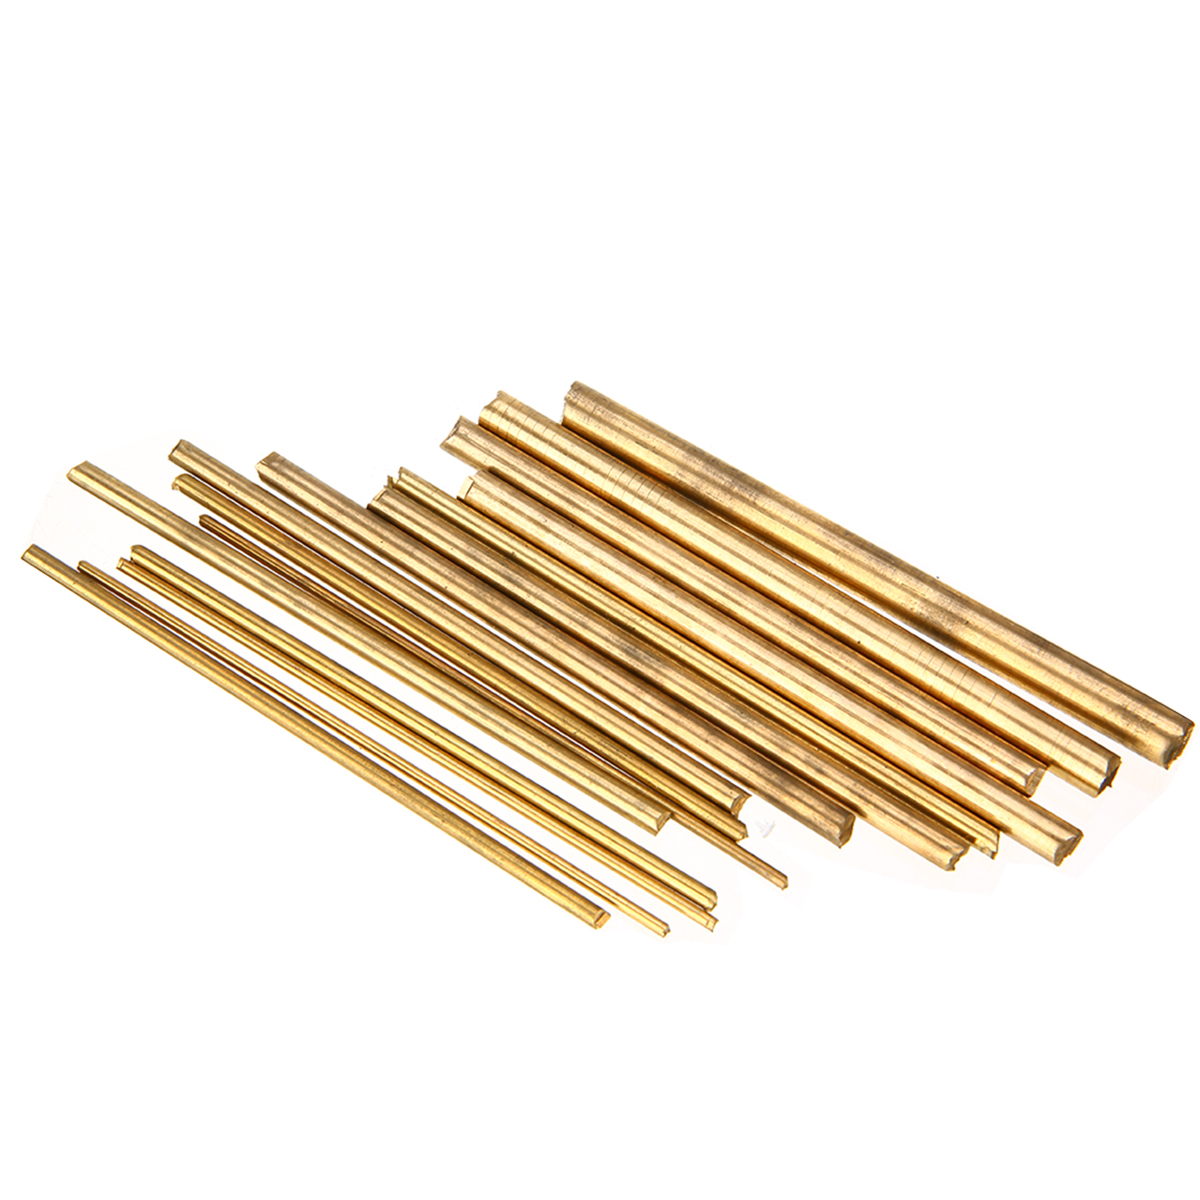 15pcs Durable Brass Rod Bar Watchmaker Lathe DIY Watch Tool Craft Making Parts 100mm Length 2/3/4/5/6/7/8mm Diameter Mayitr thumb brass maple blackwood convex bottom planes violin making woodworking tool luthiertools craft plane